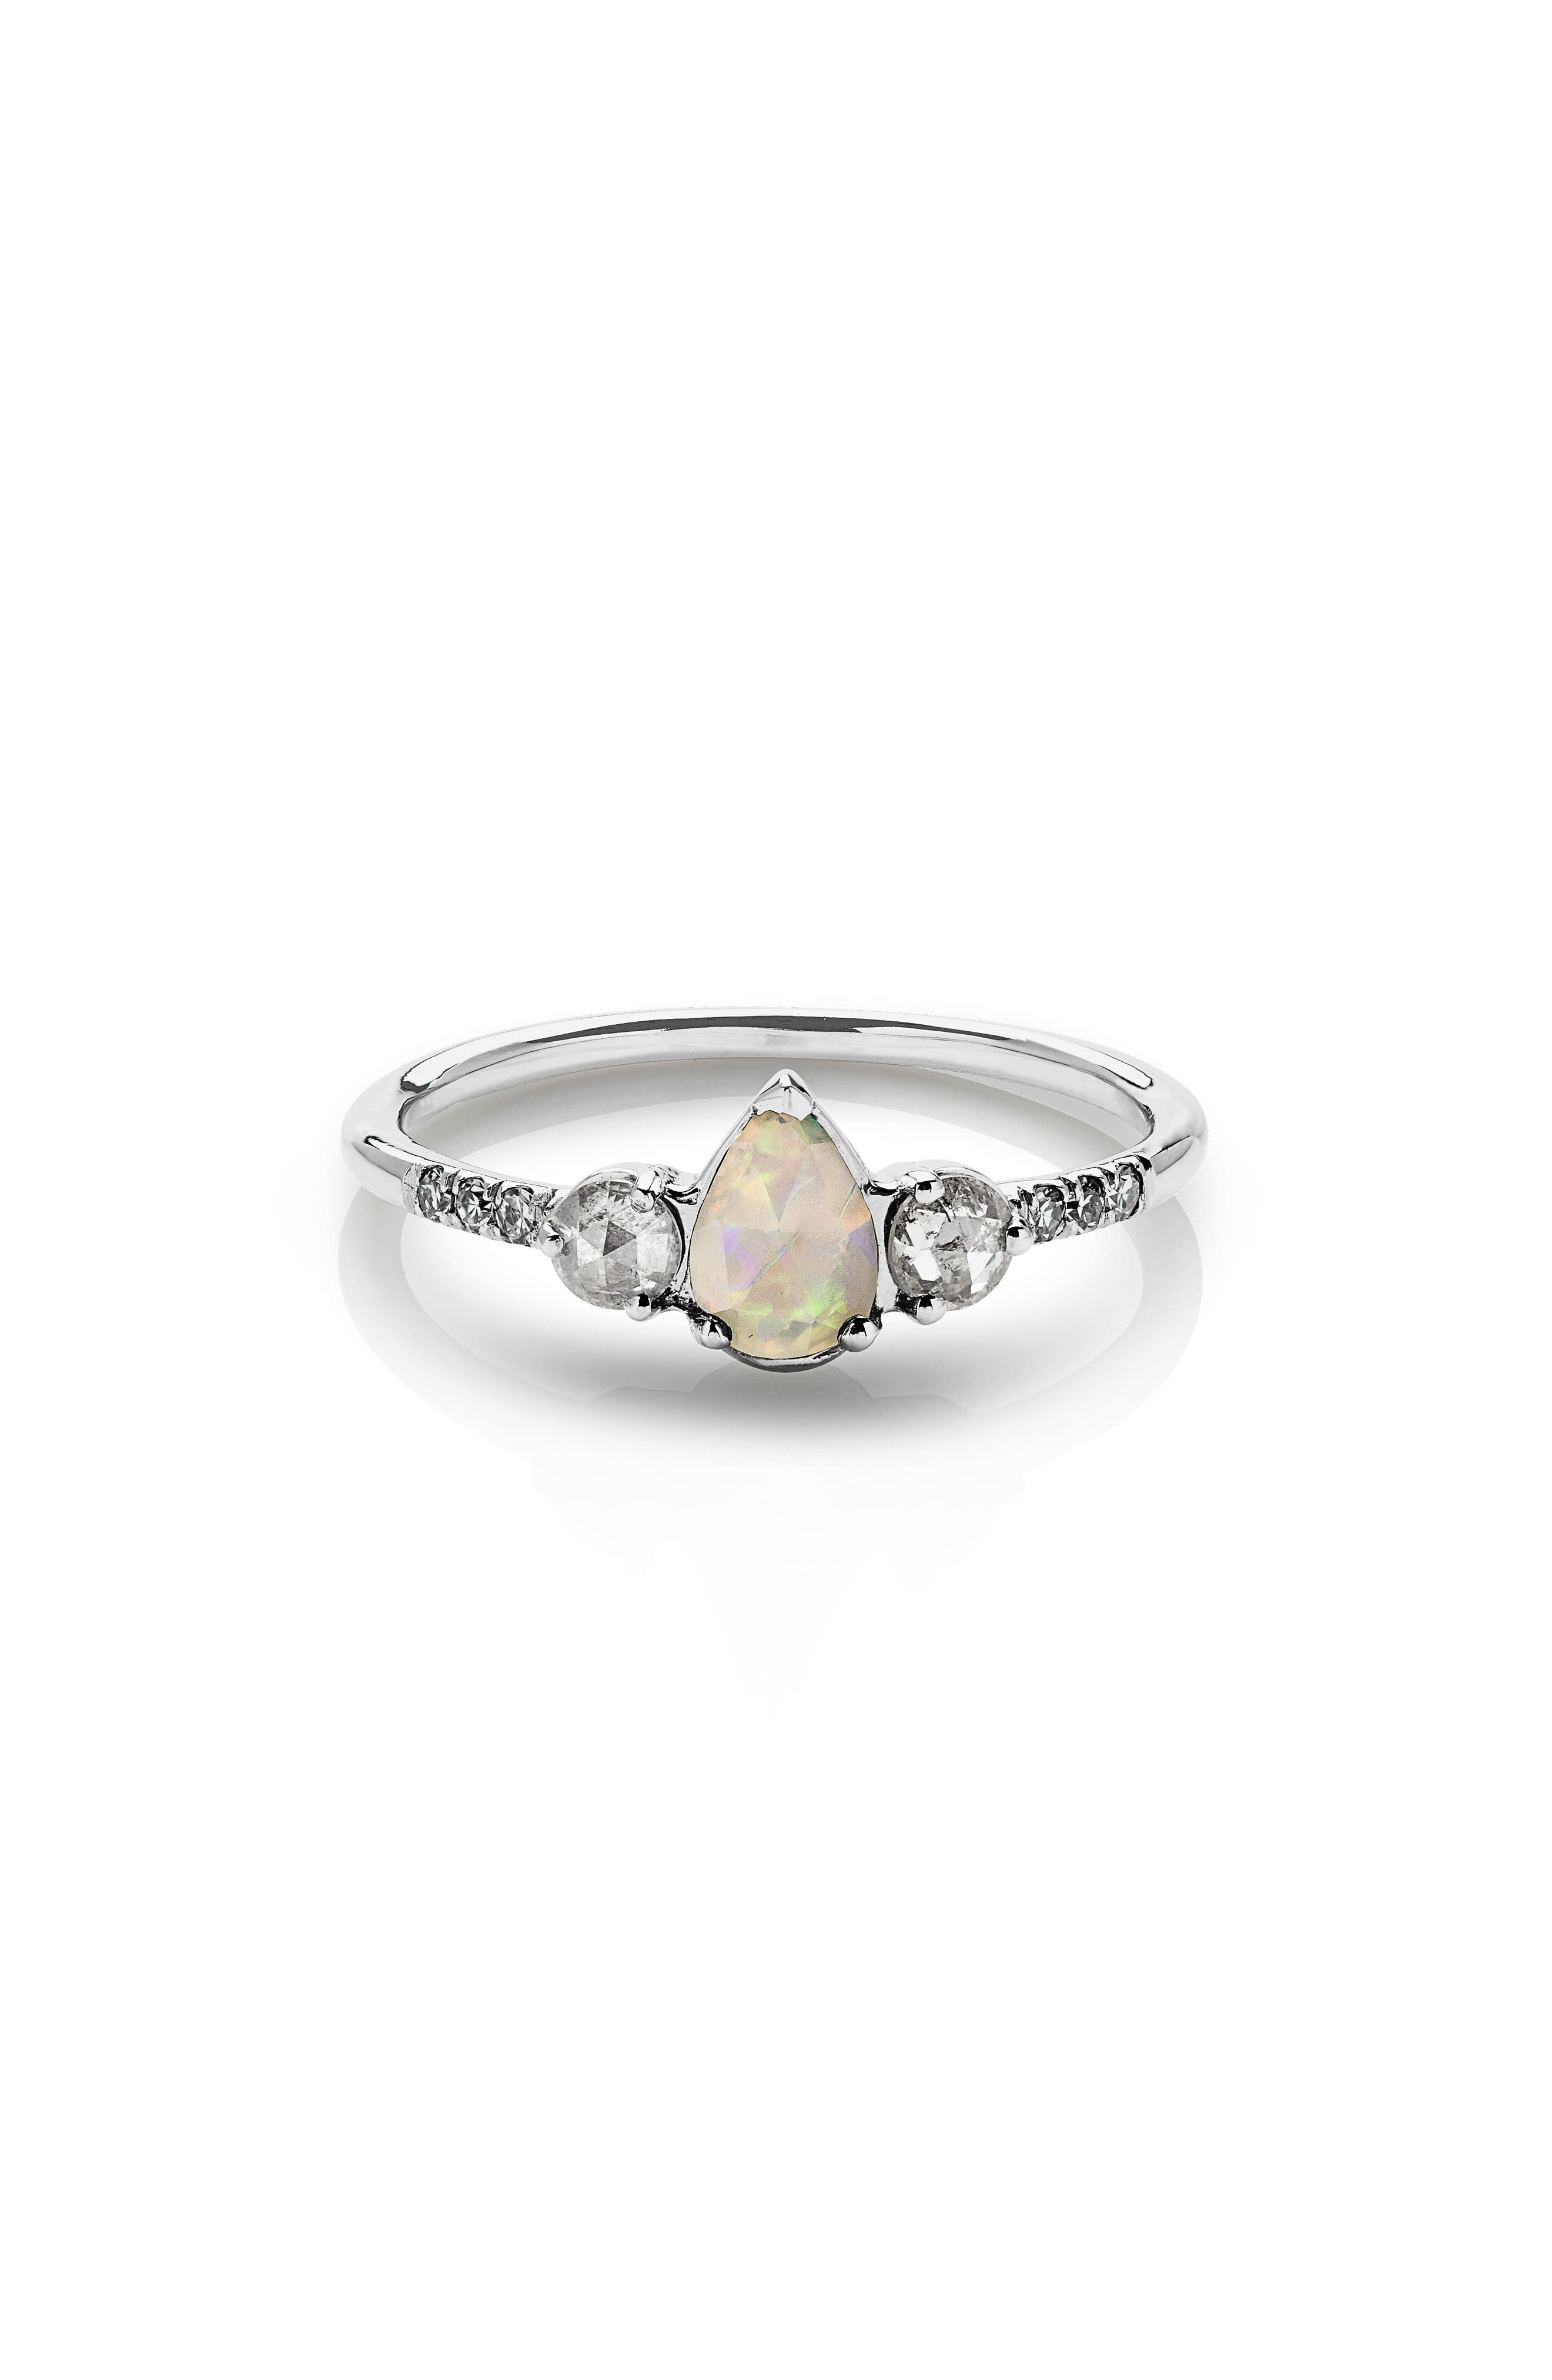 Radiance Opal & Diamond Ring,                         Main,                         color, WHITE GOLD/ OPAL